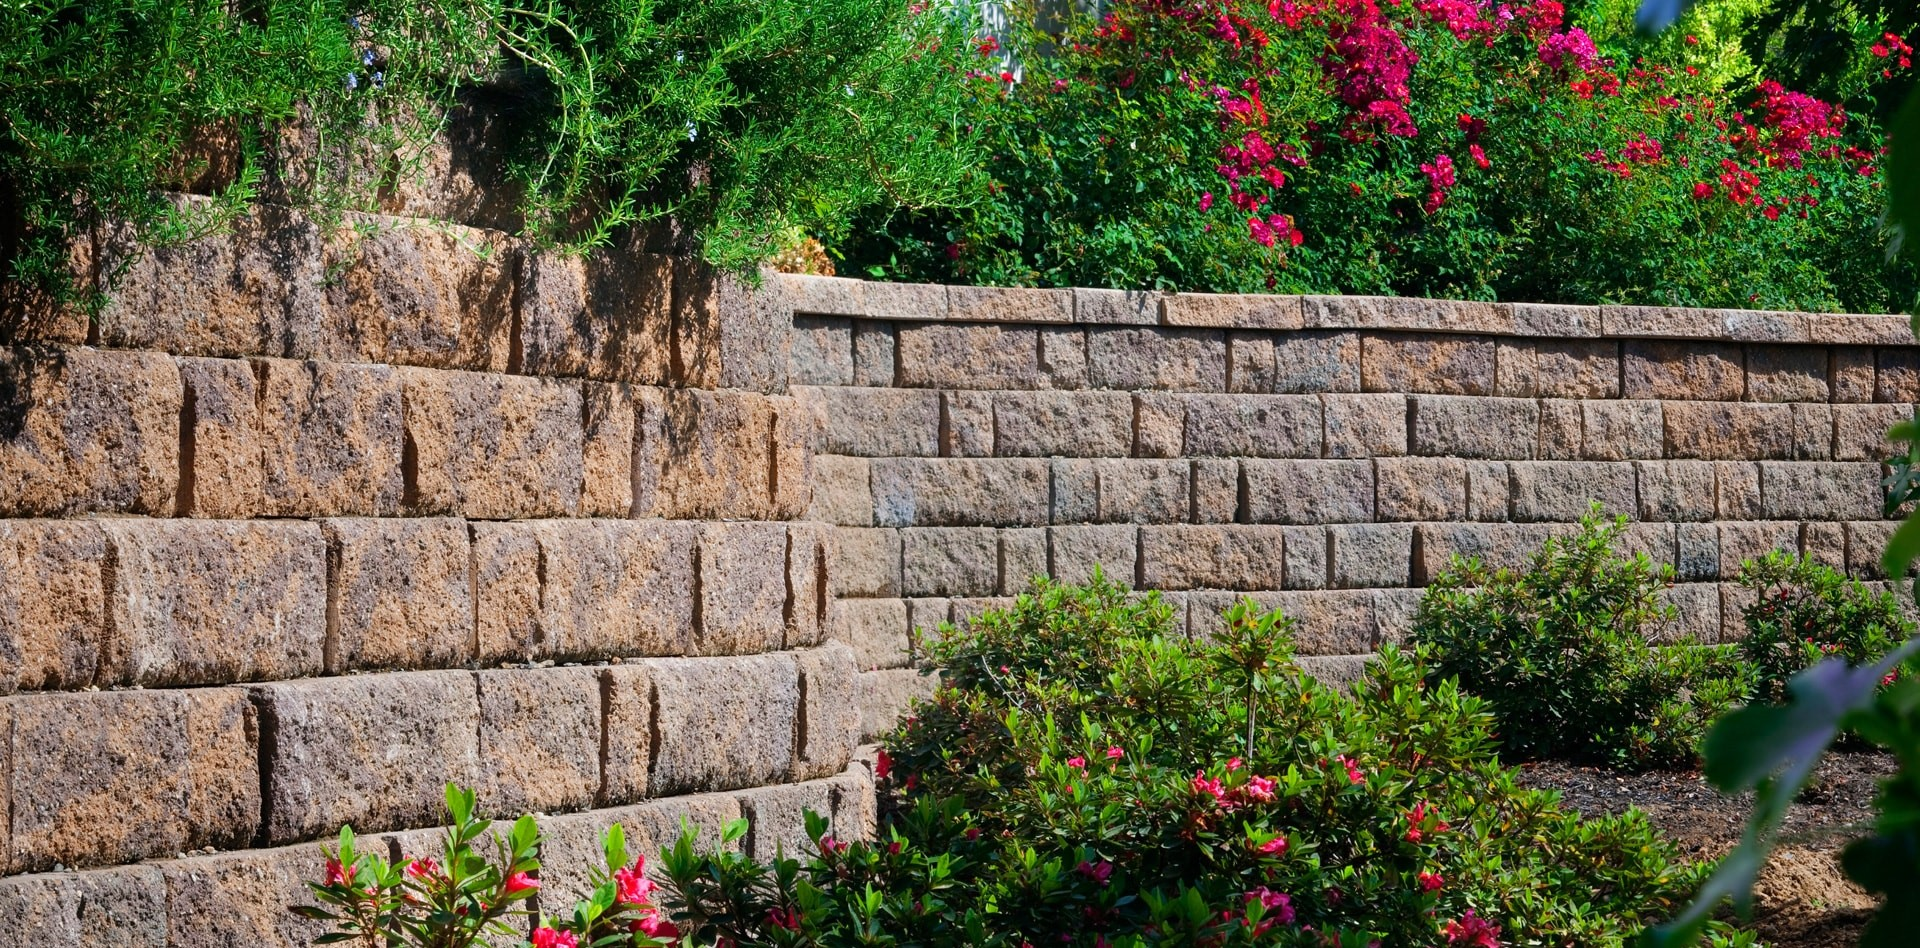 Factors to consider while choosing a paver contractor